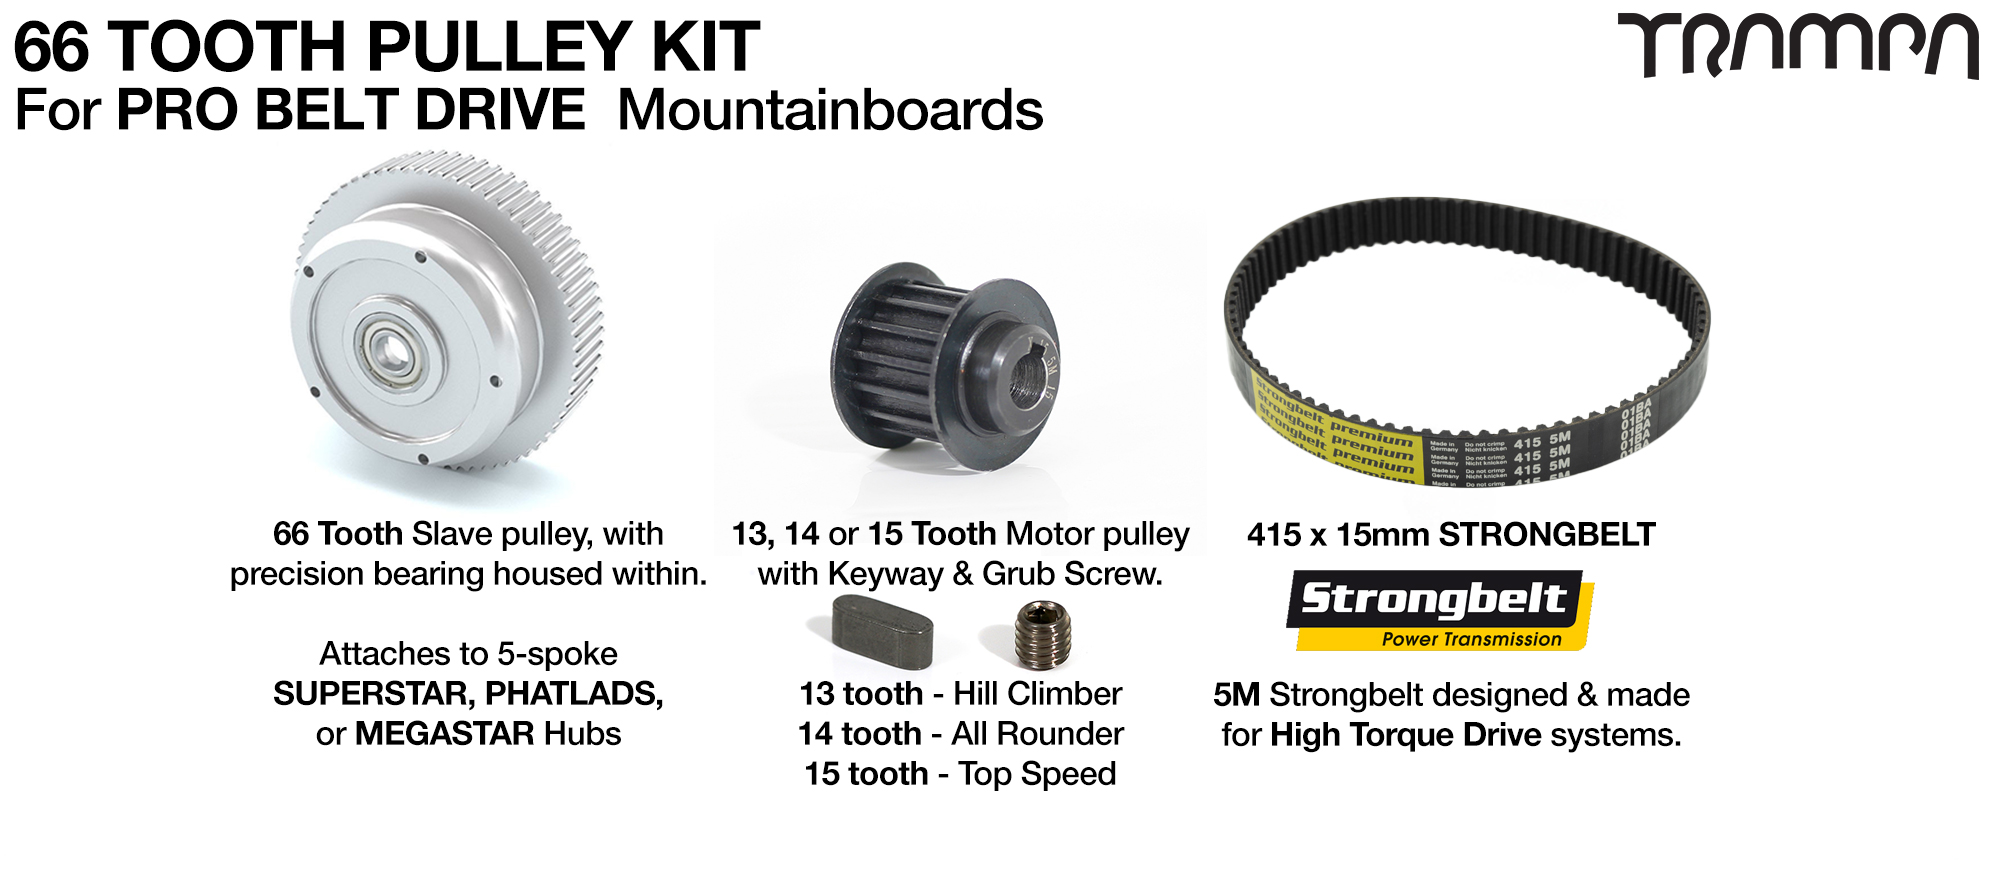 PRO BELT DRIVE MTB Pulley Kit with 66 Tooth Slave & 460mm belt for 8 inch SUPERSTAR or 9 Inch  MEGASTAR wheels